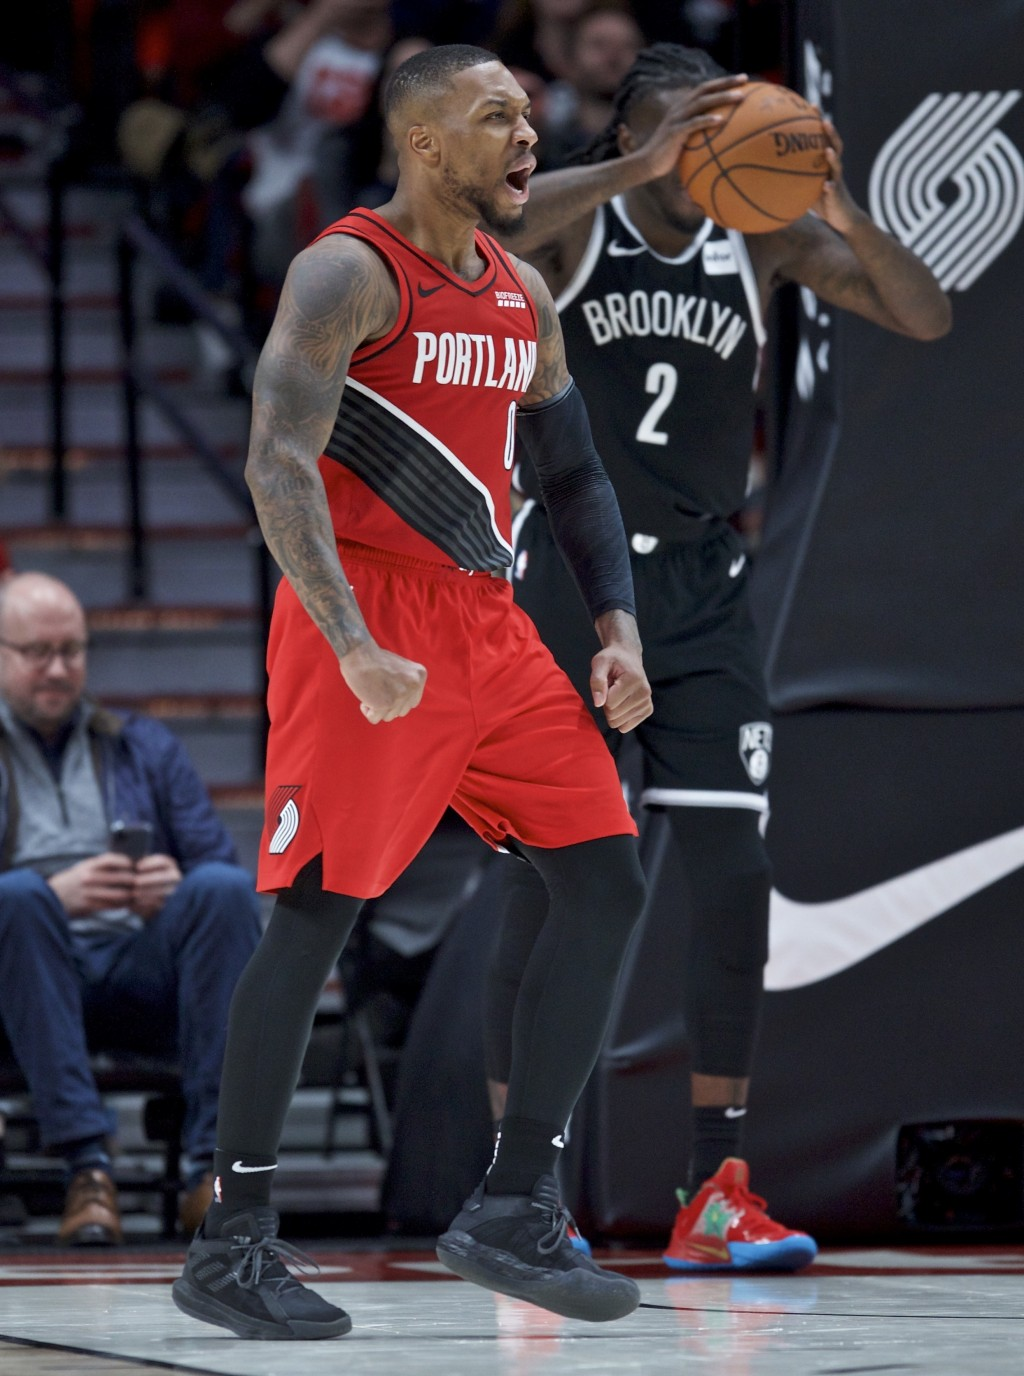 Portland Trail Blazers guard Damian Lillard reacts after scoring his 50th point of the night, during the second half of the team's NBA basketball game...